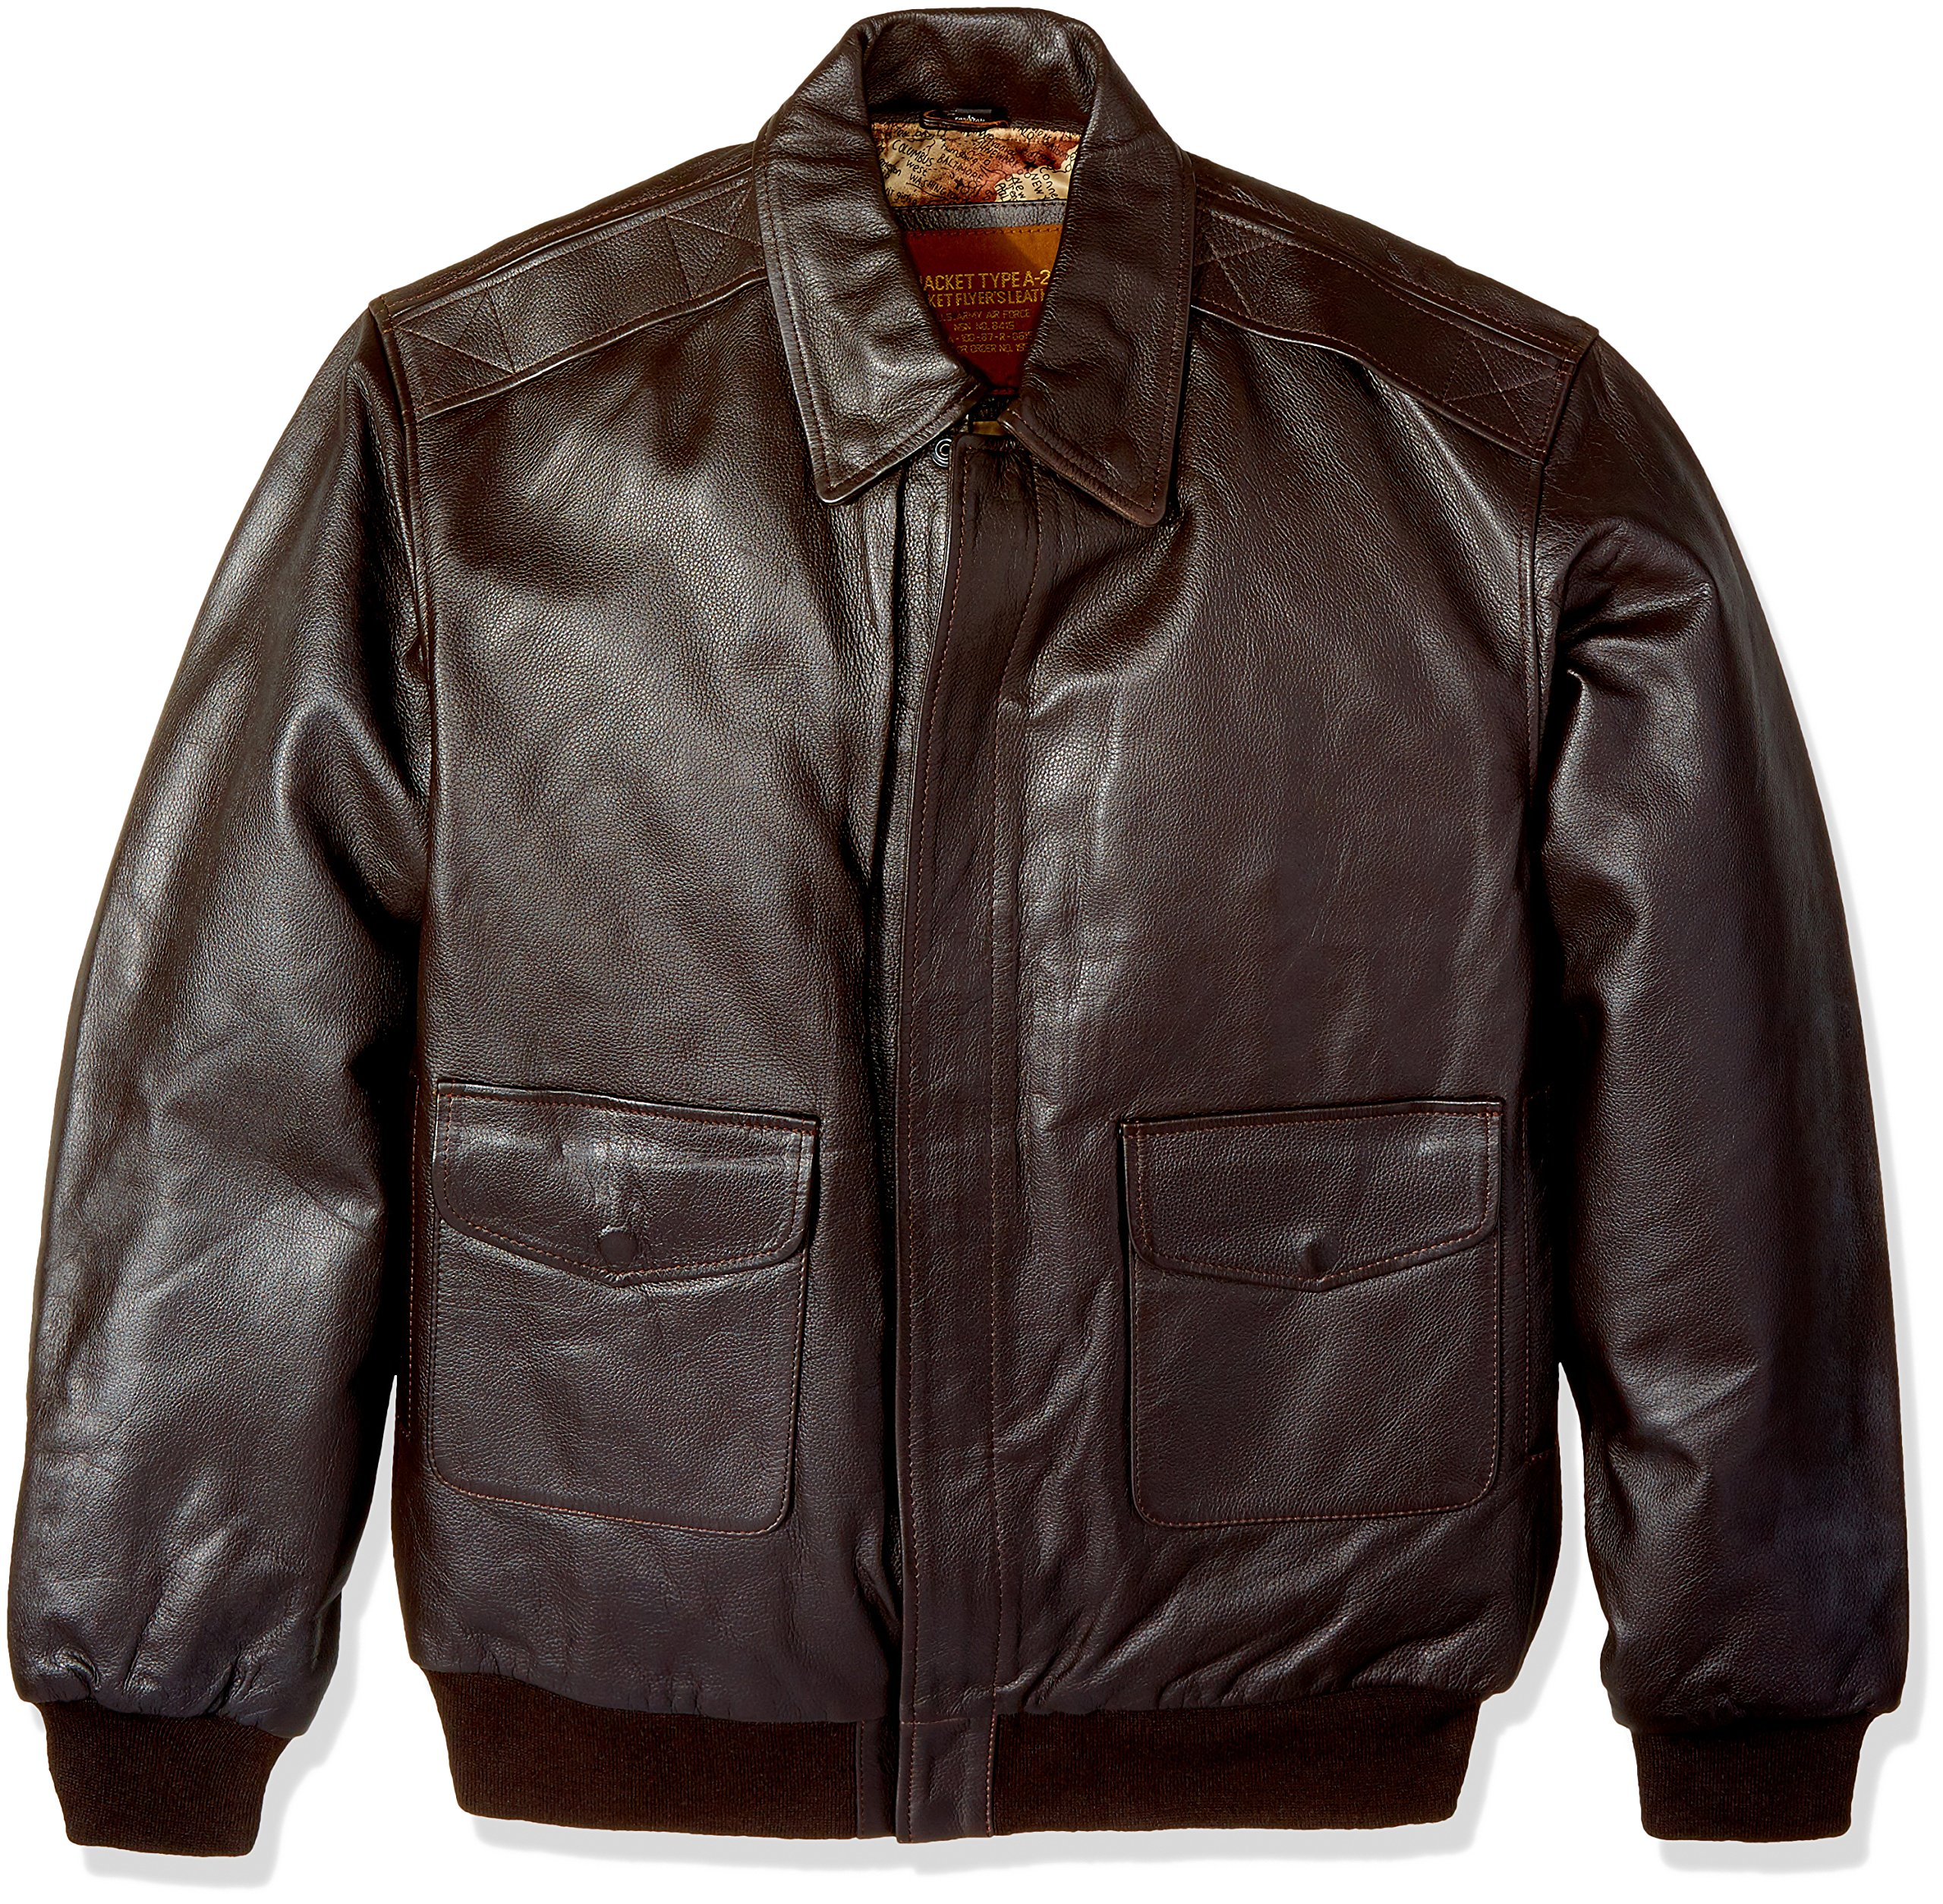 Excelled Men's Big and Tall Leather Flight Jacket, Brown, Lt